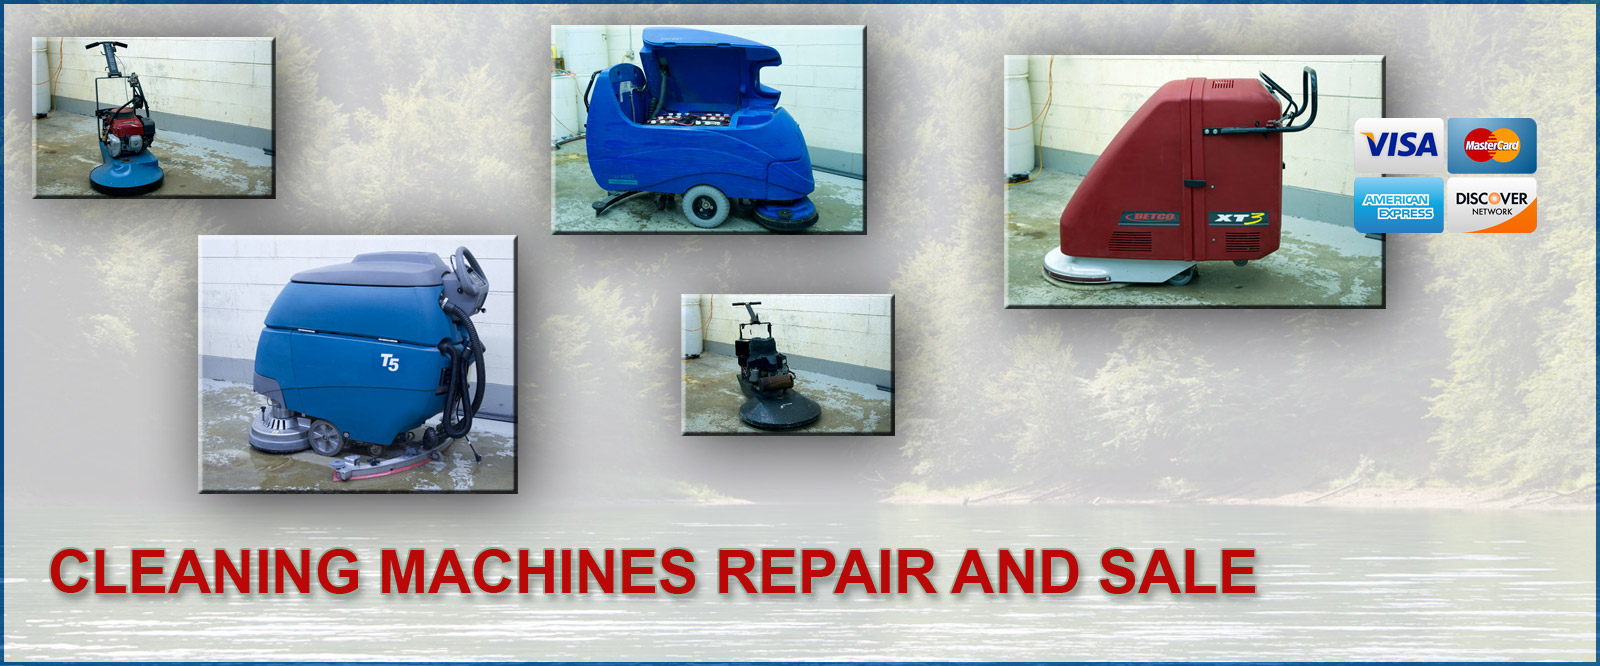 Cleaning Machines Repair and Sale